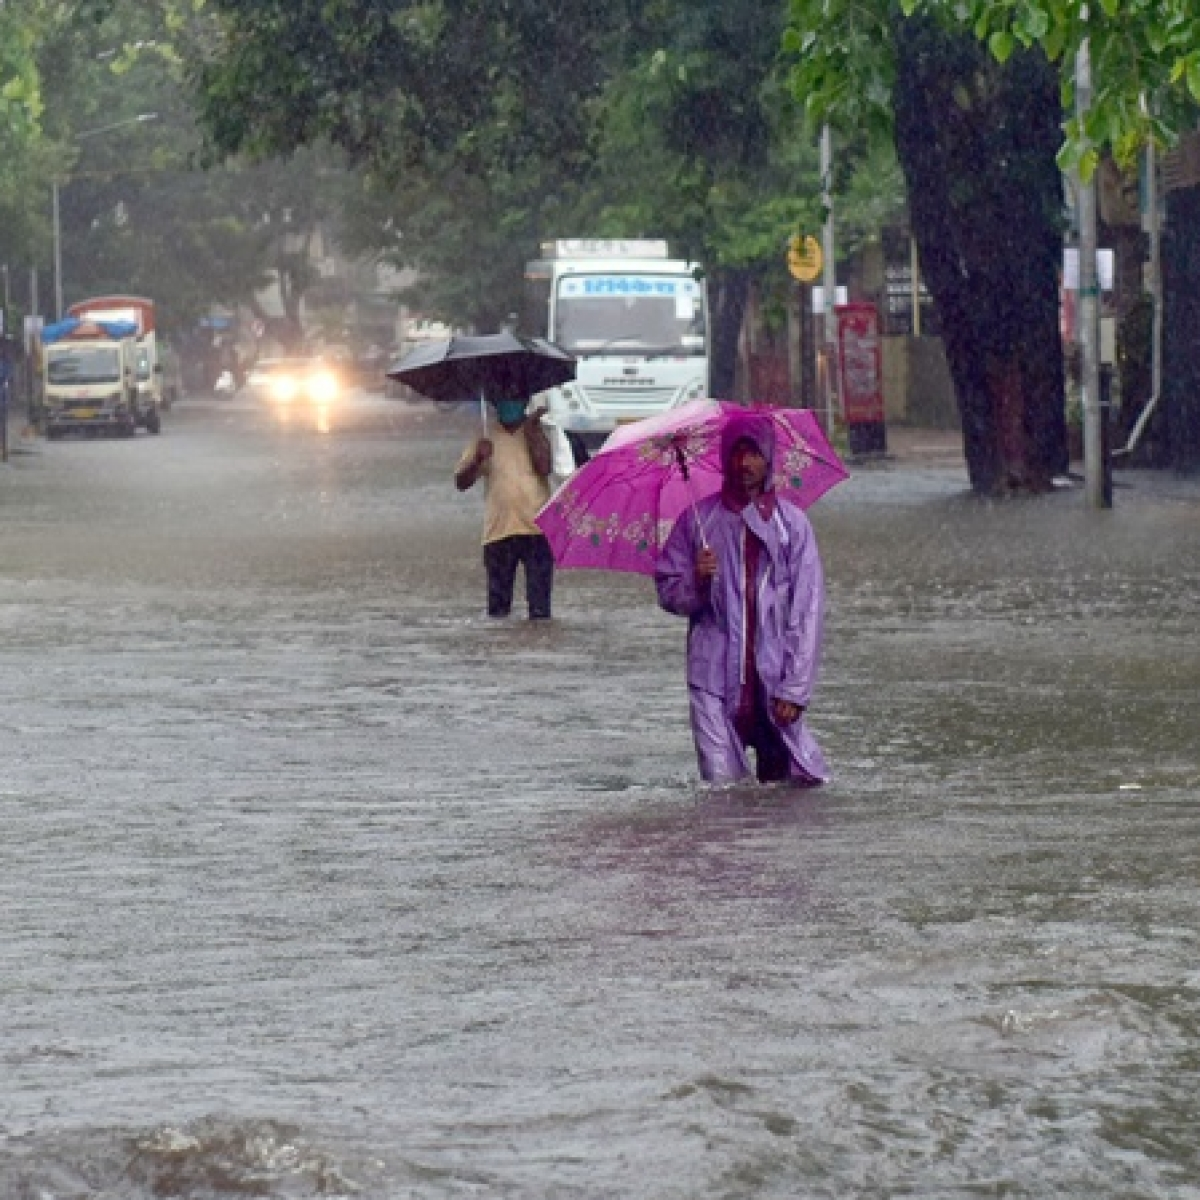 Mumbai Weather Update: IMD says heavy rainfall is likely to occur at isolated places in city